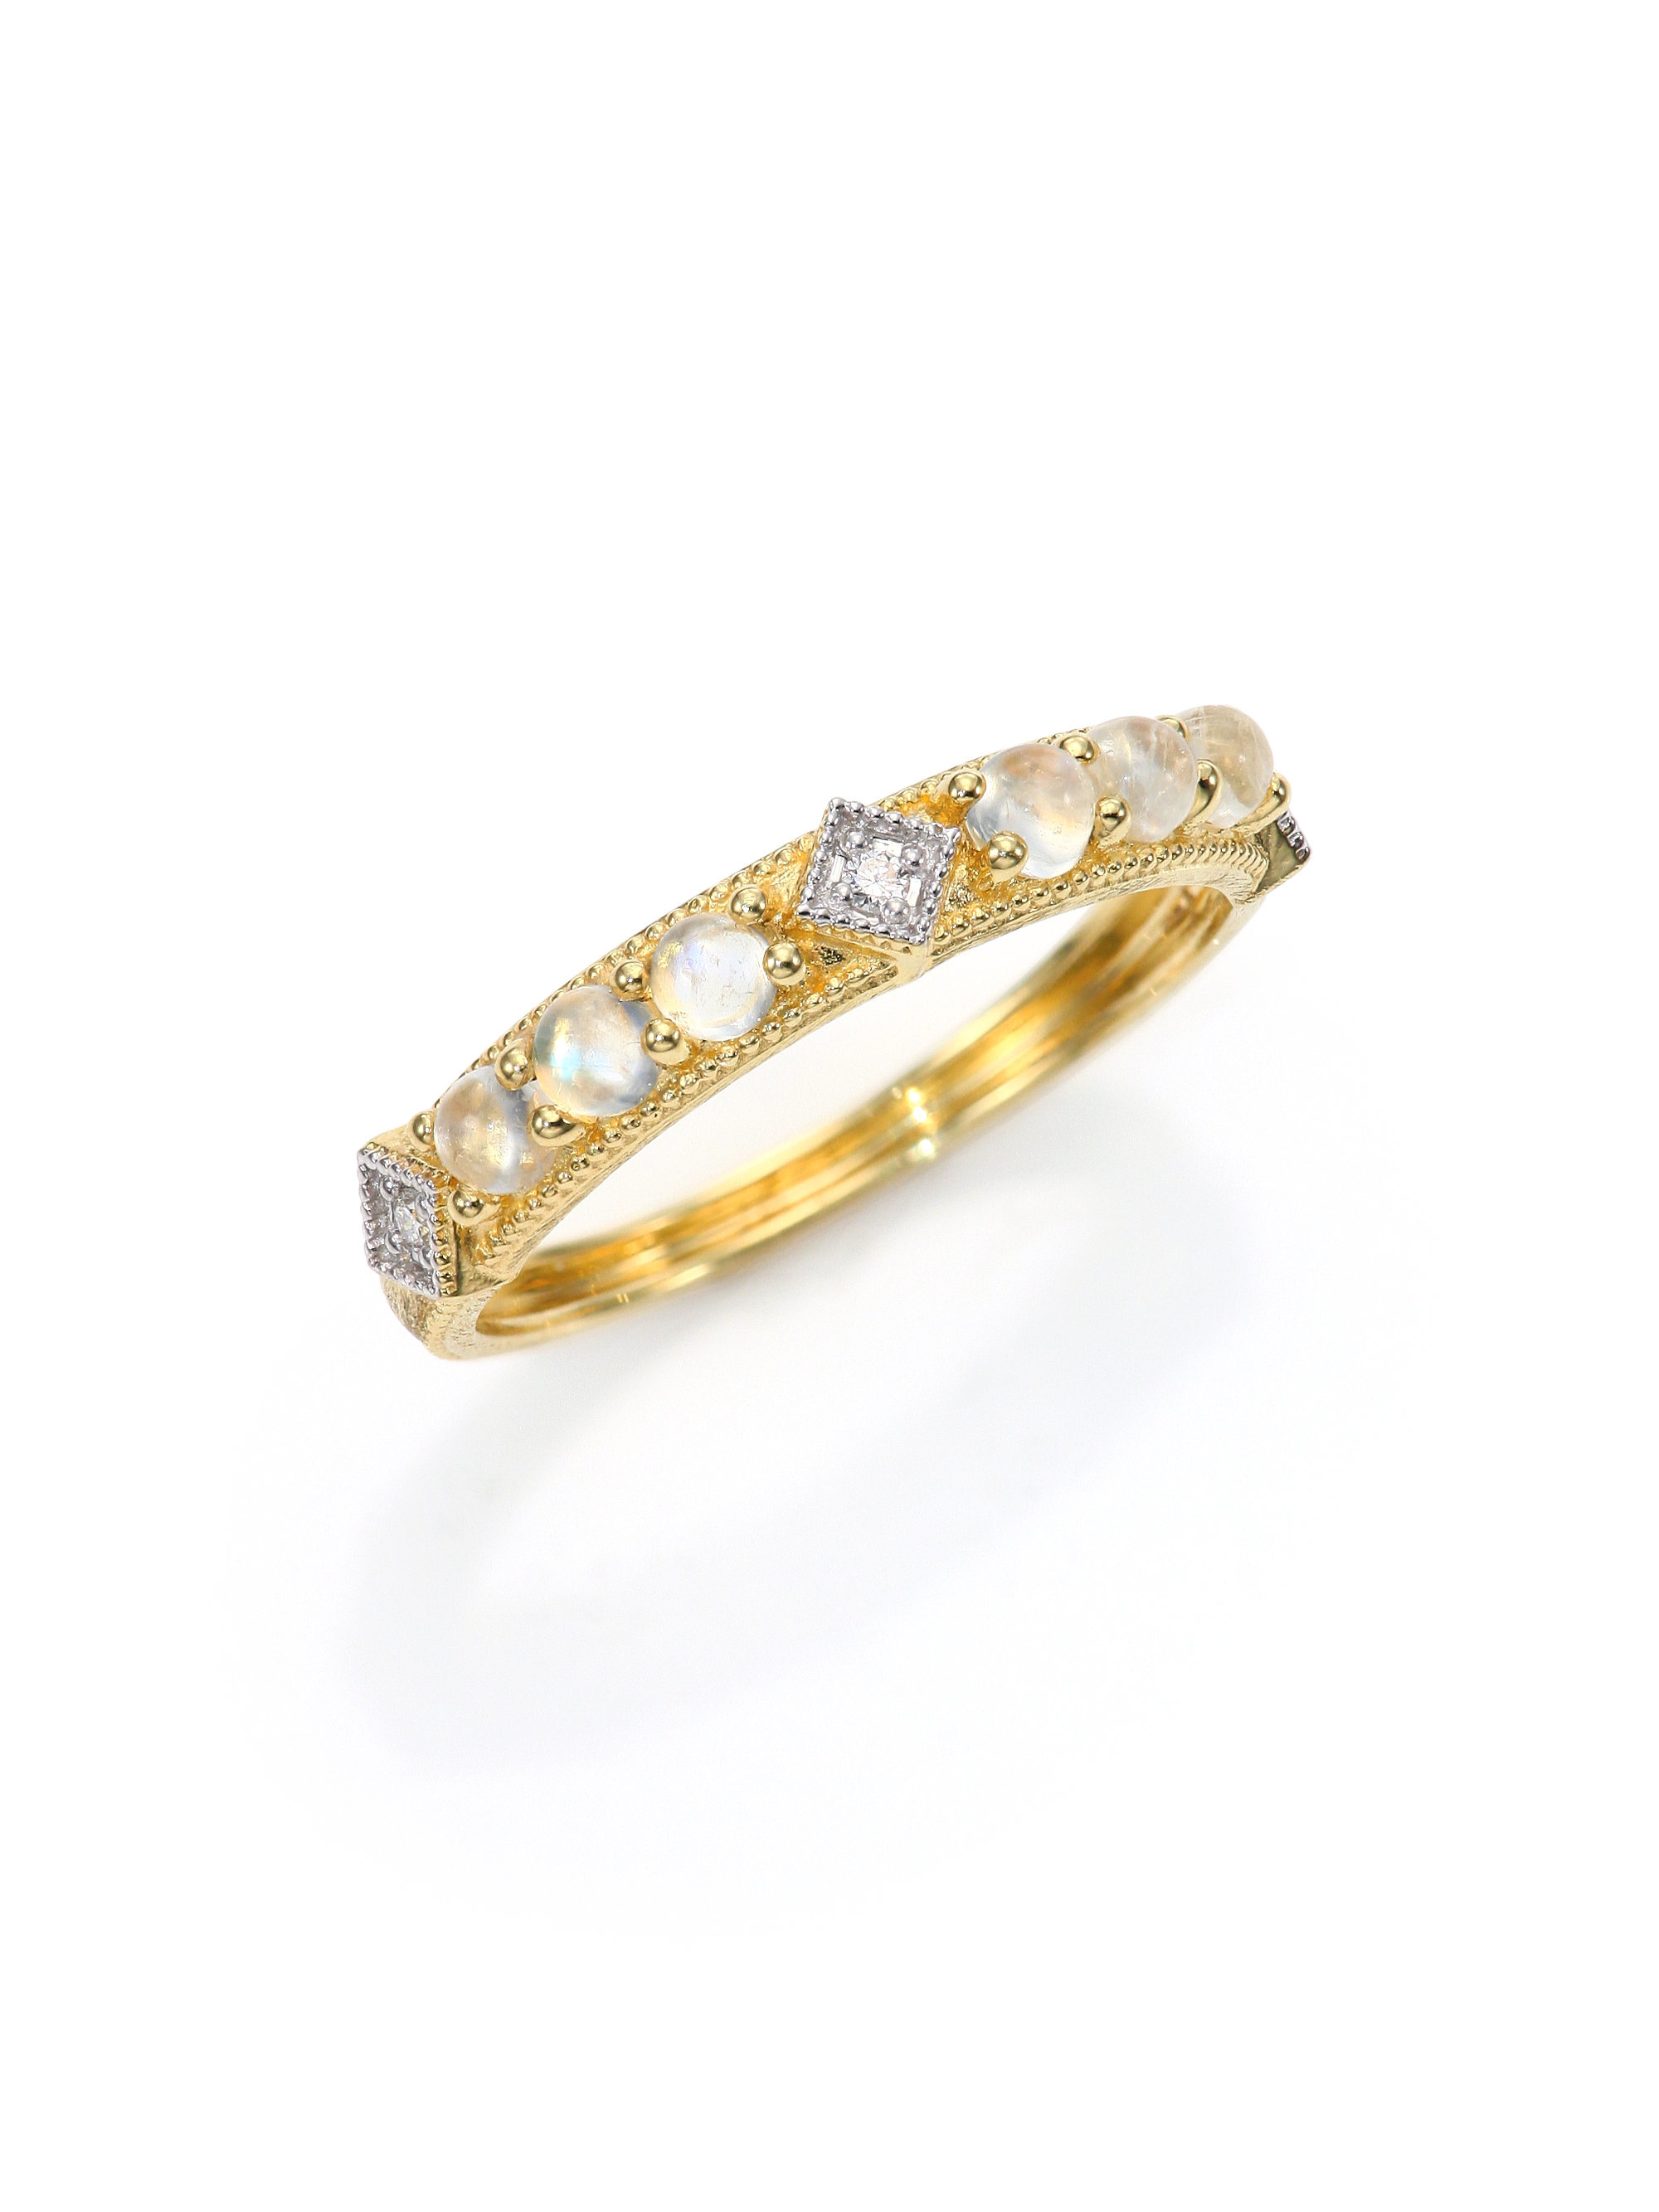 Lyst - Jude Frances Lisse Diamond, Moonstone & 18k Yellow Gold ...